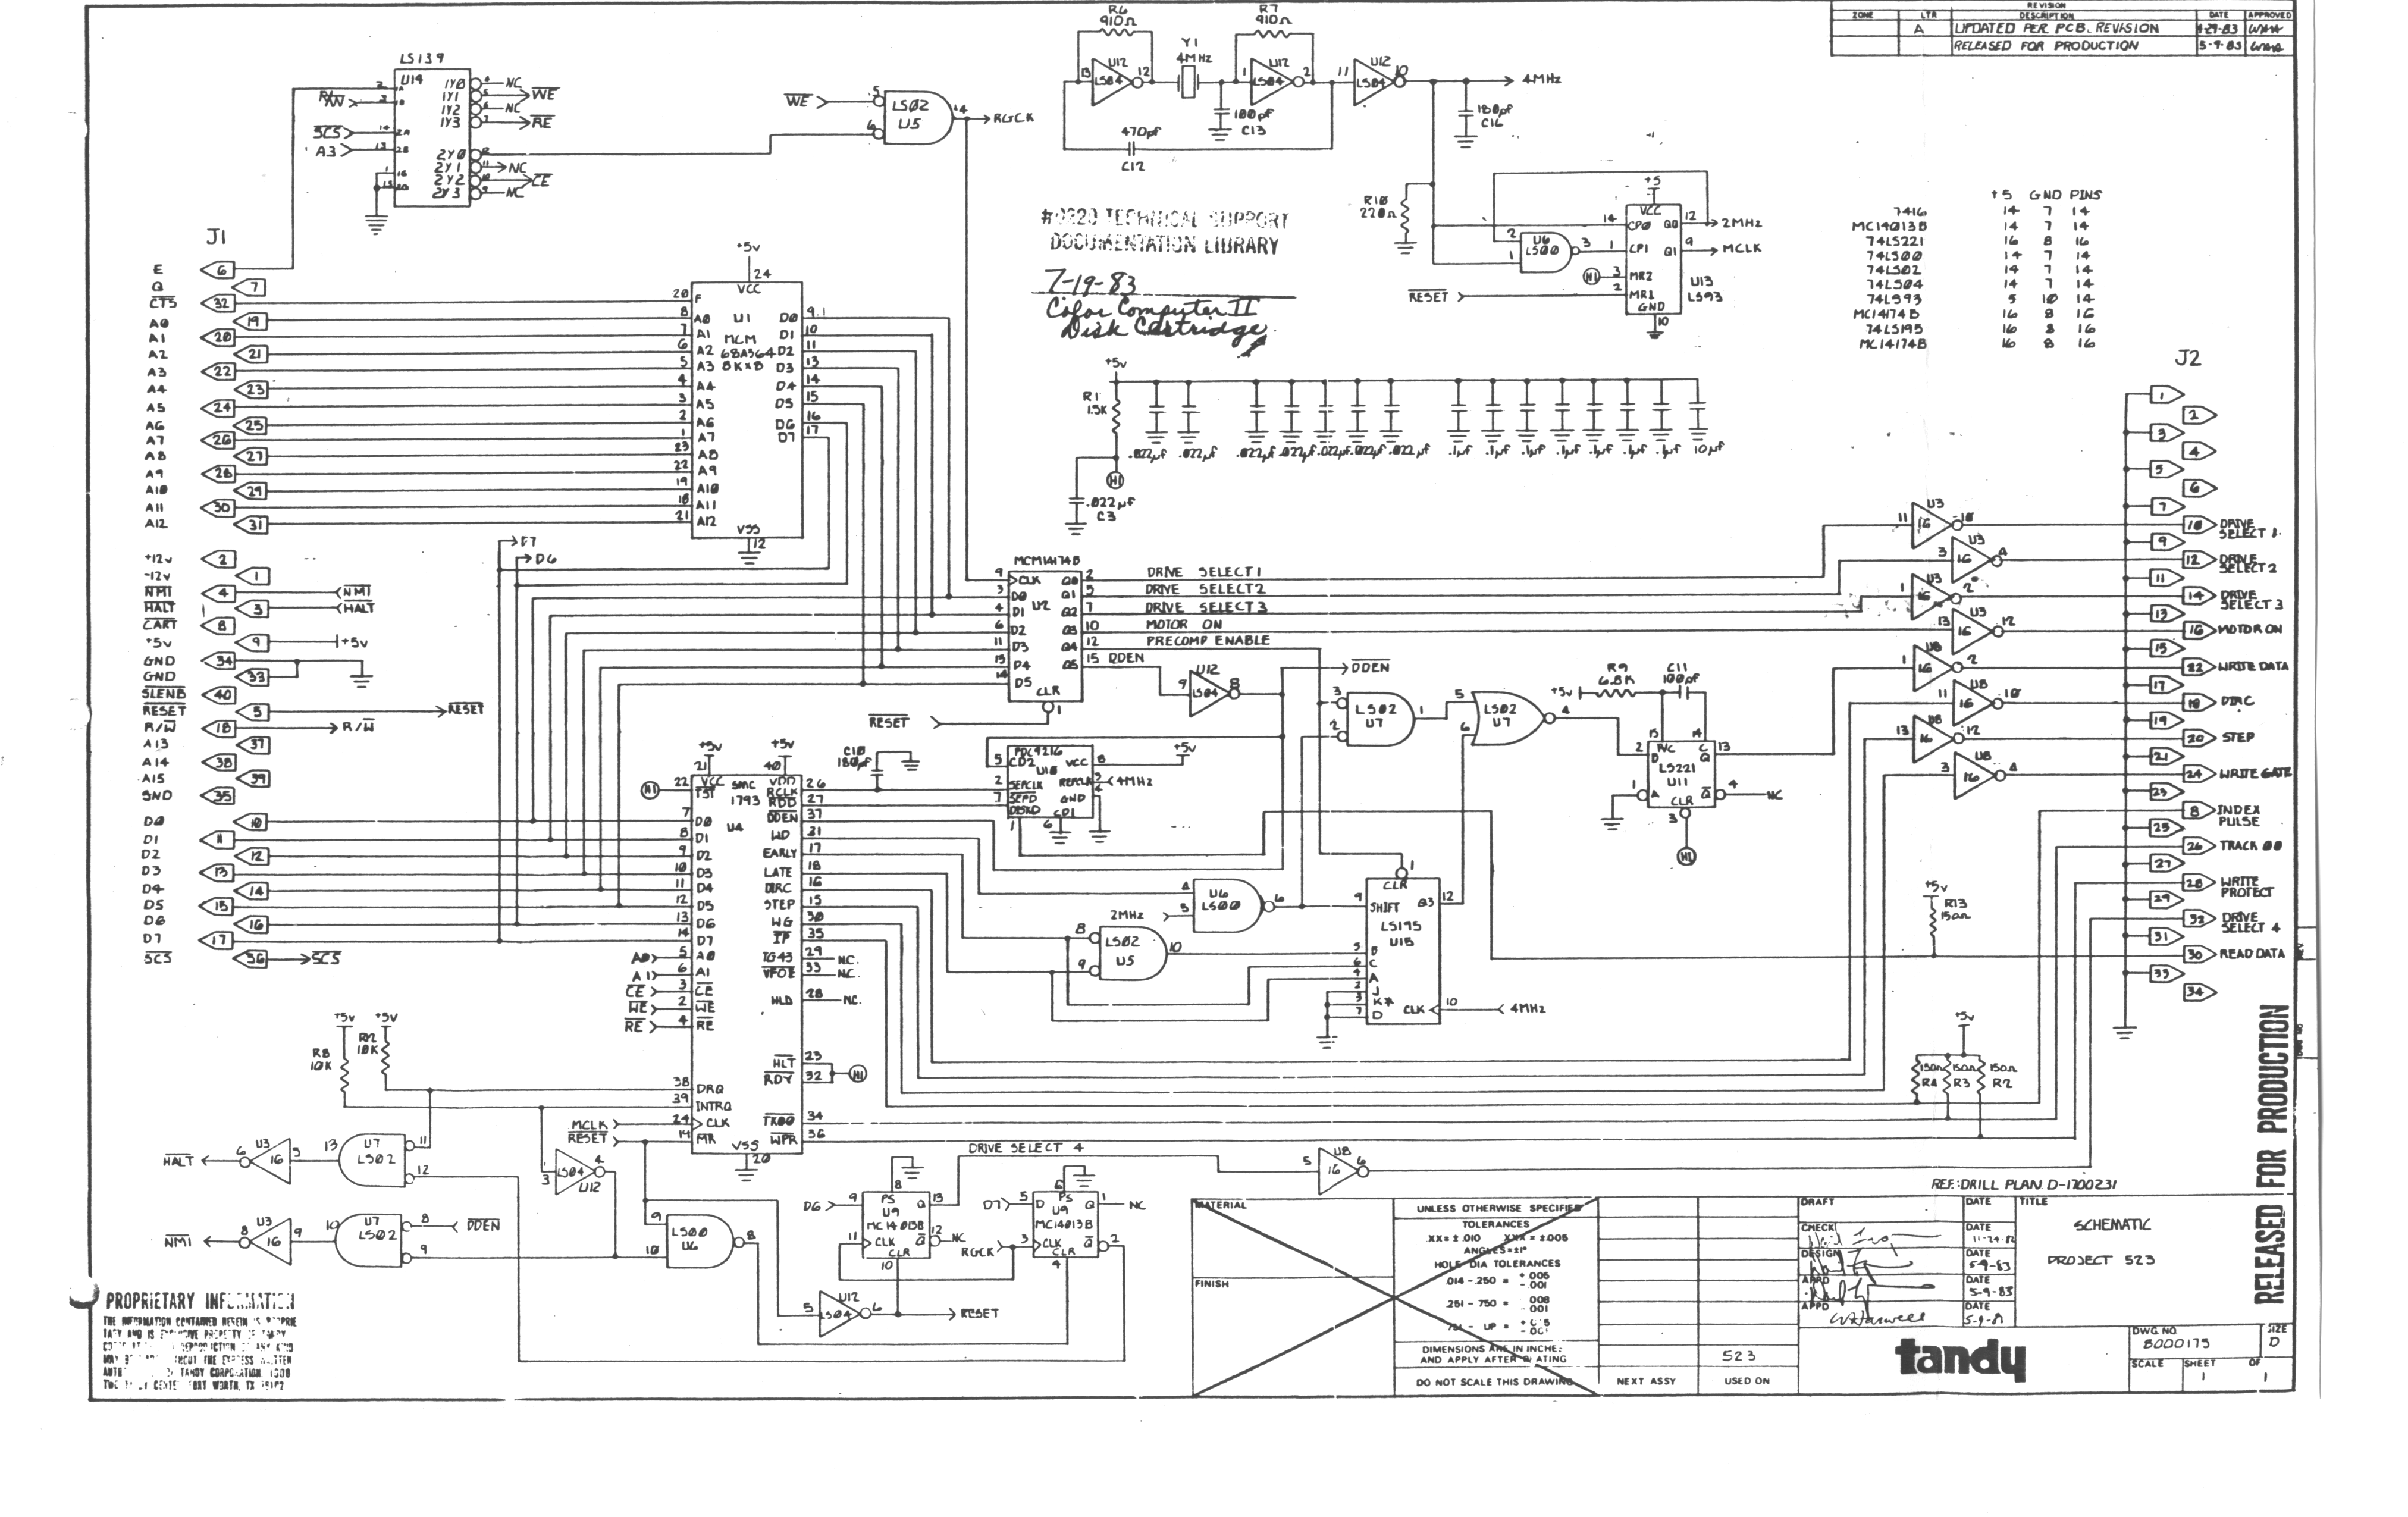 trs 80 color computer archive Motherboard Schematic